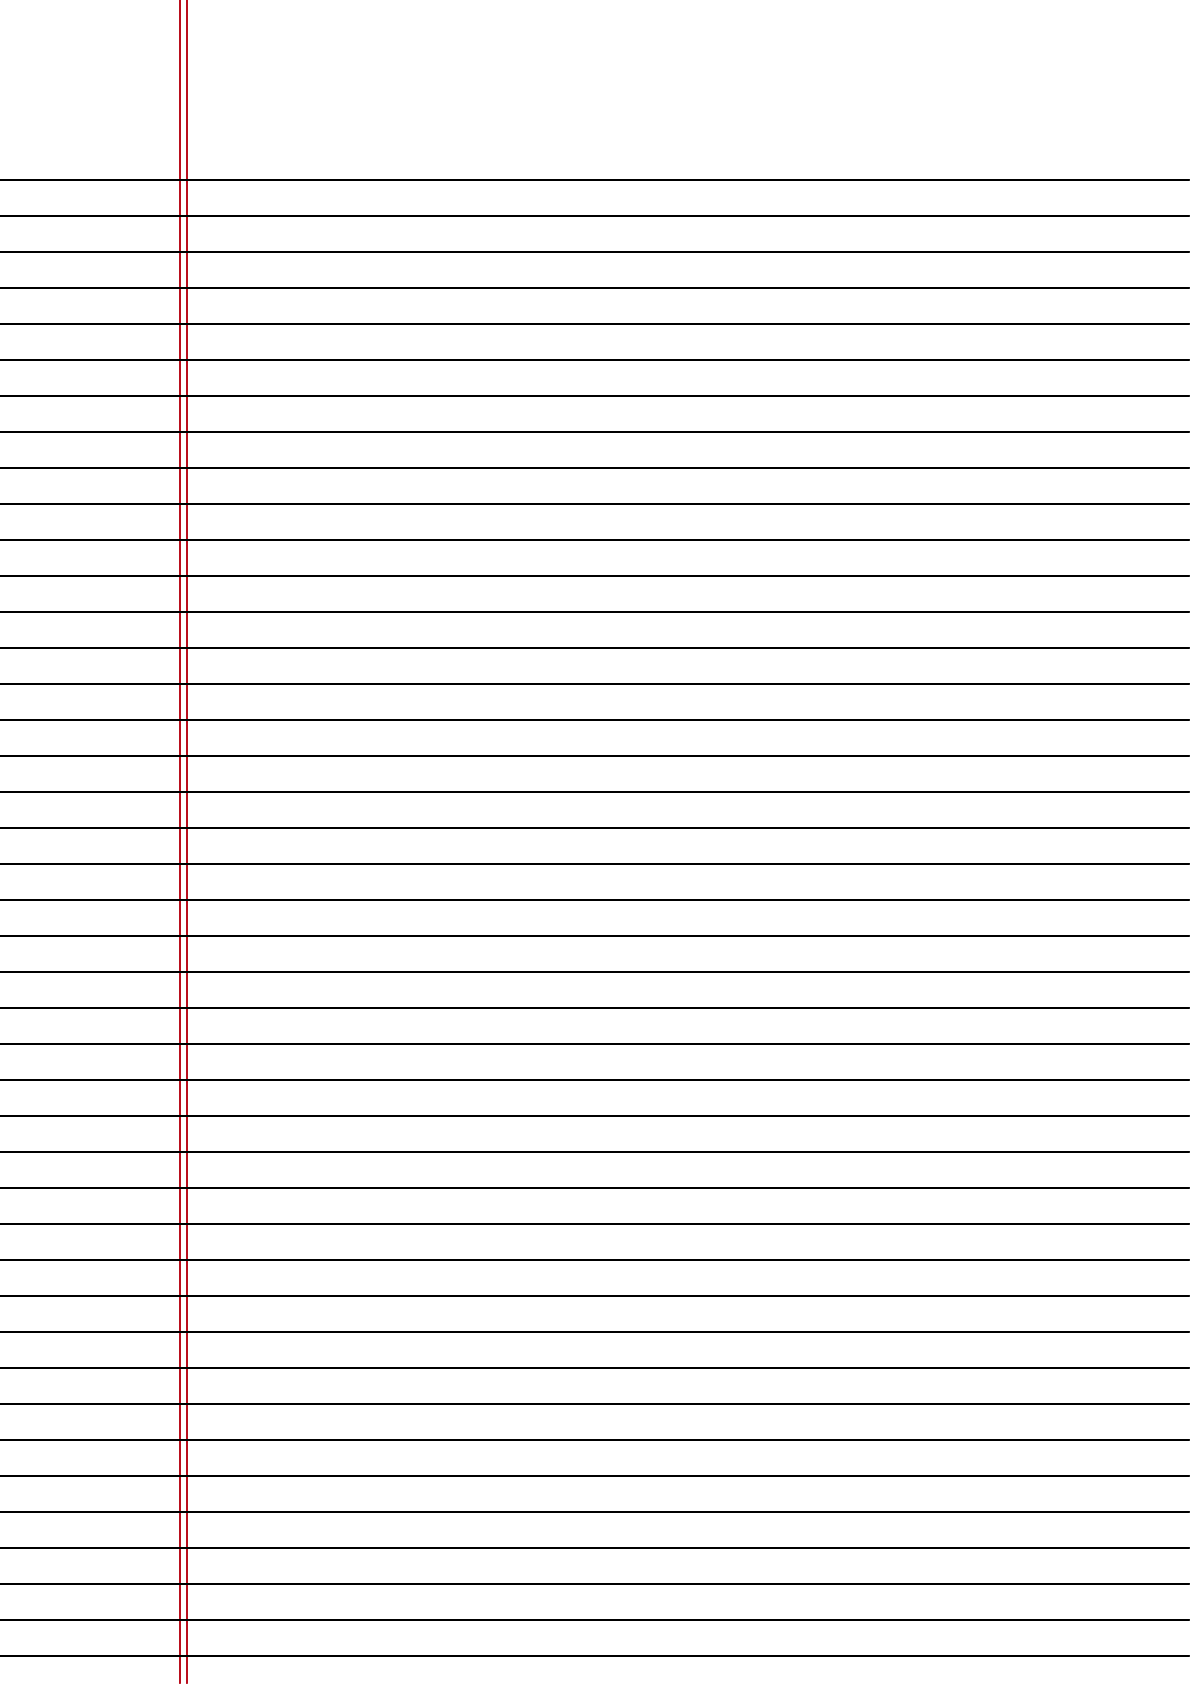 It's just an image of Modest Wide Ruled Paper Printable